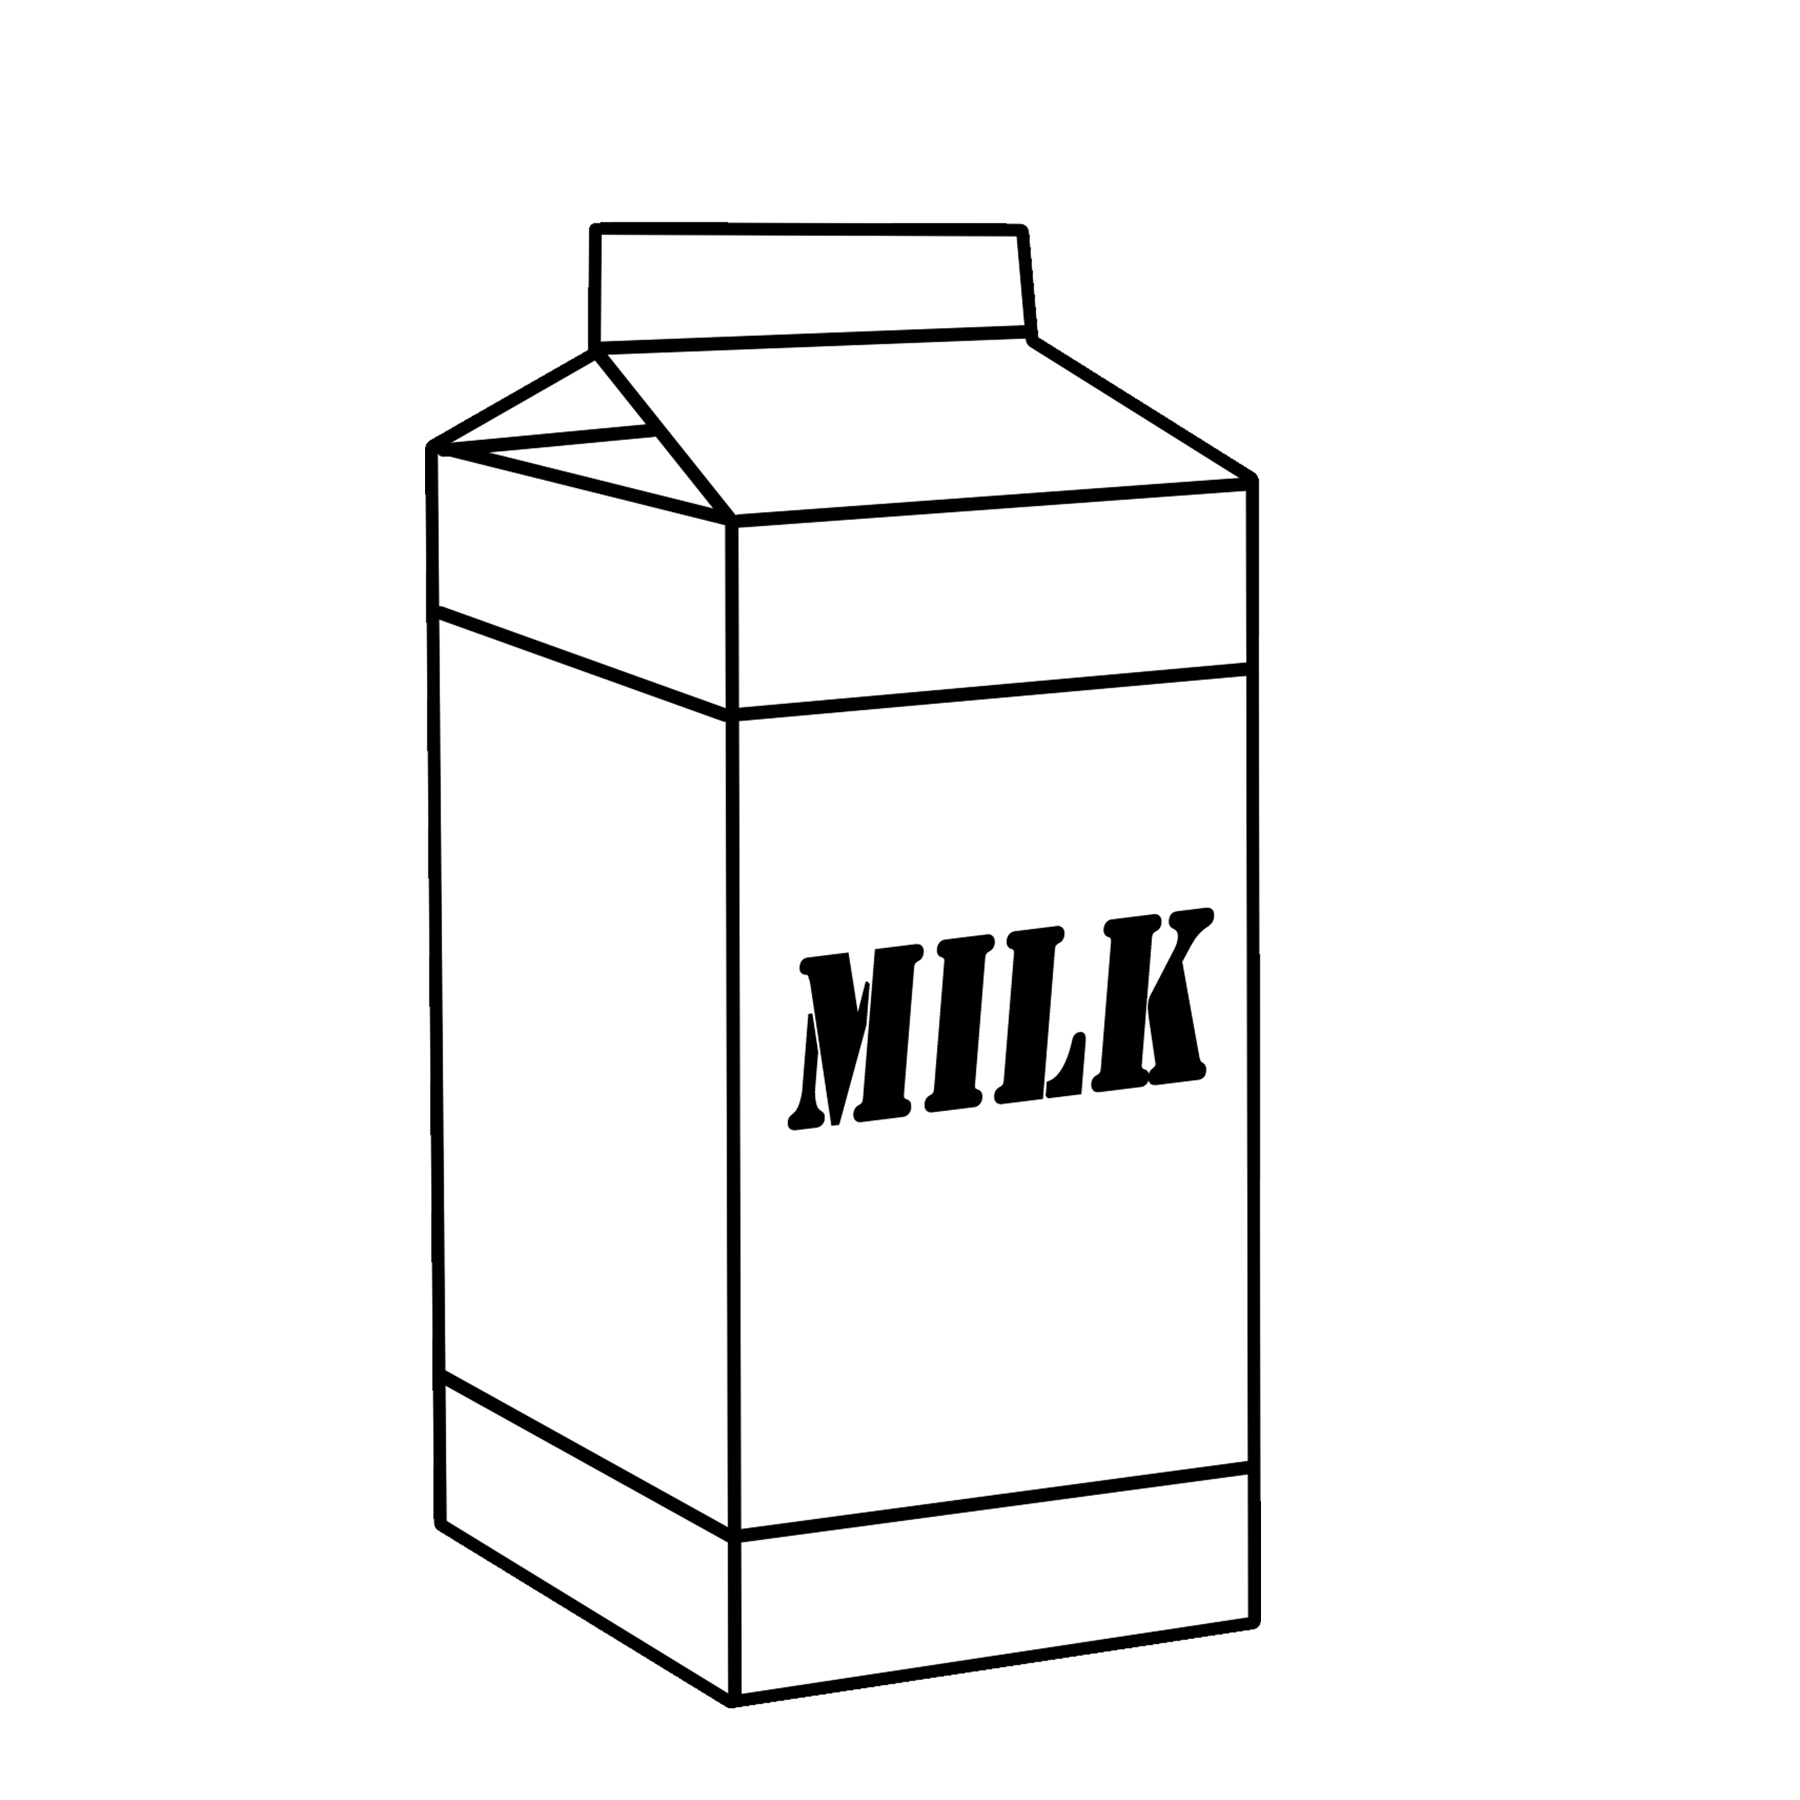 Dairy graphics free by. Clipart milk